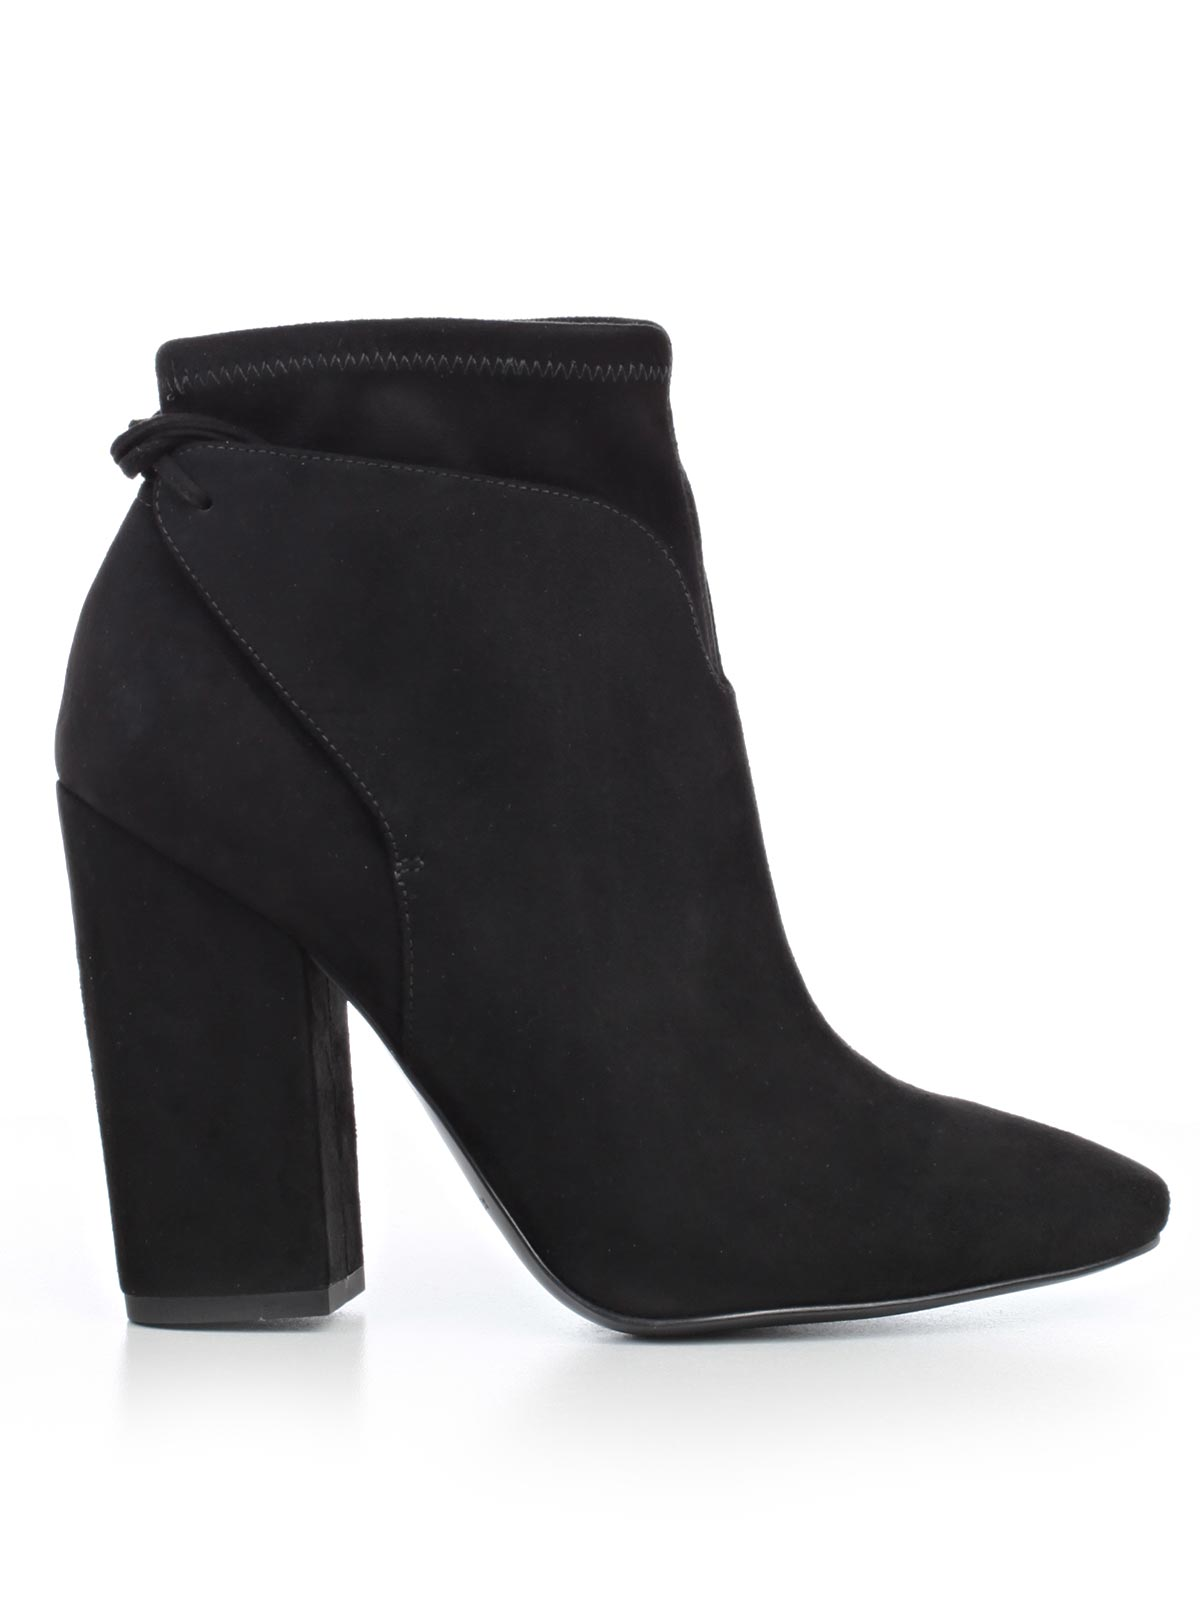 Picture of KENDALL + KYLIE FOOTWEAR POLACCO SUEDE TACCO LACCI DIETRO